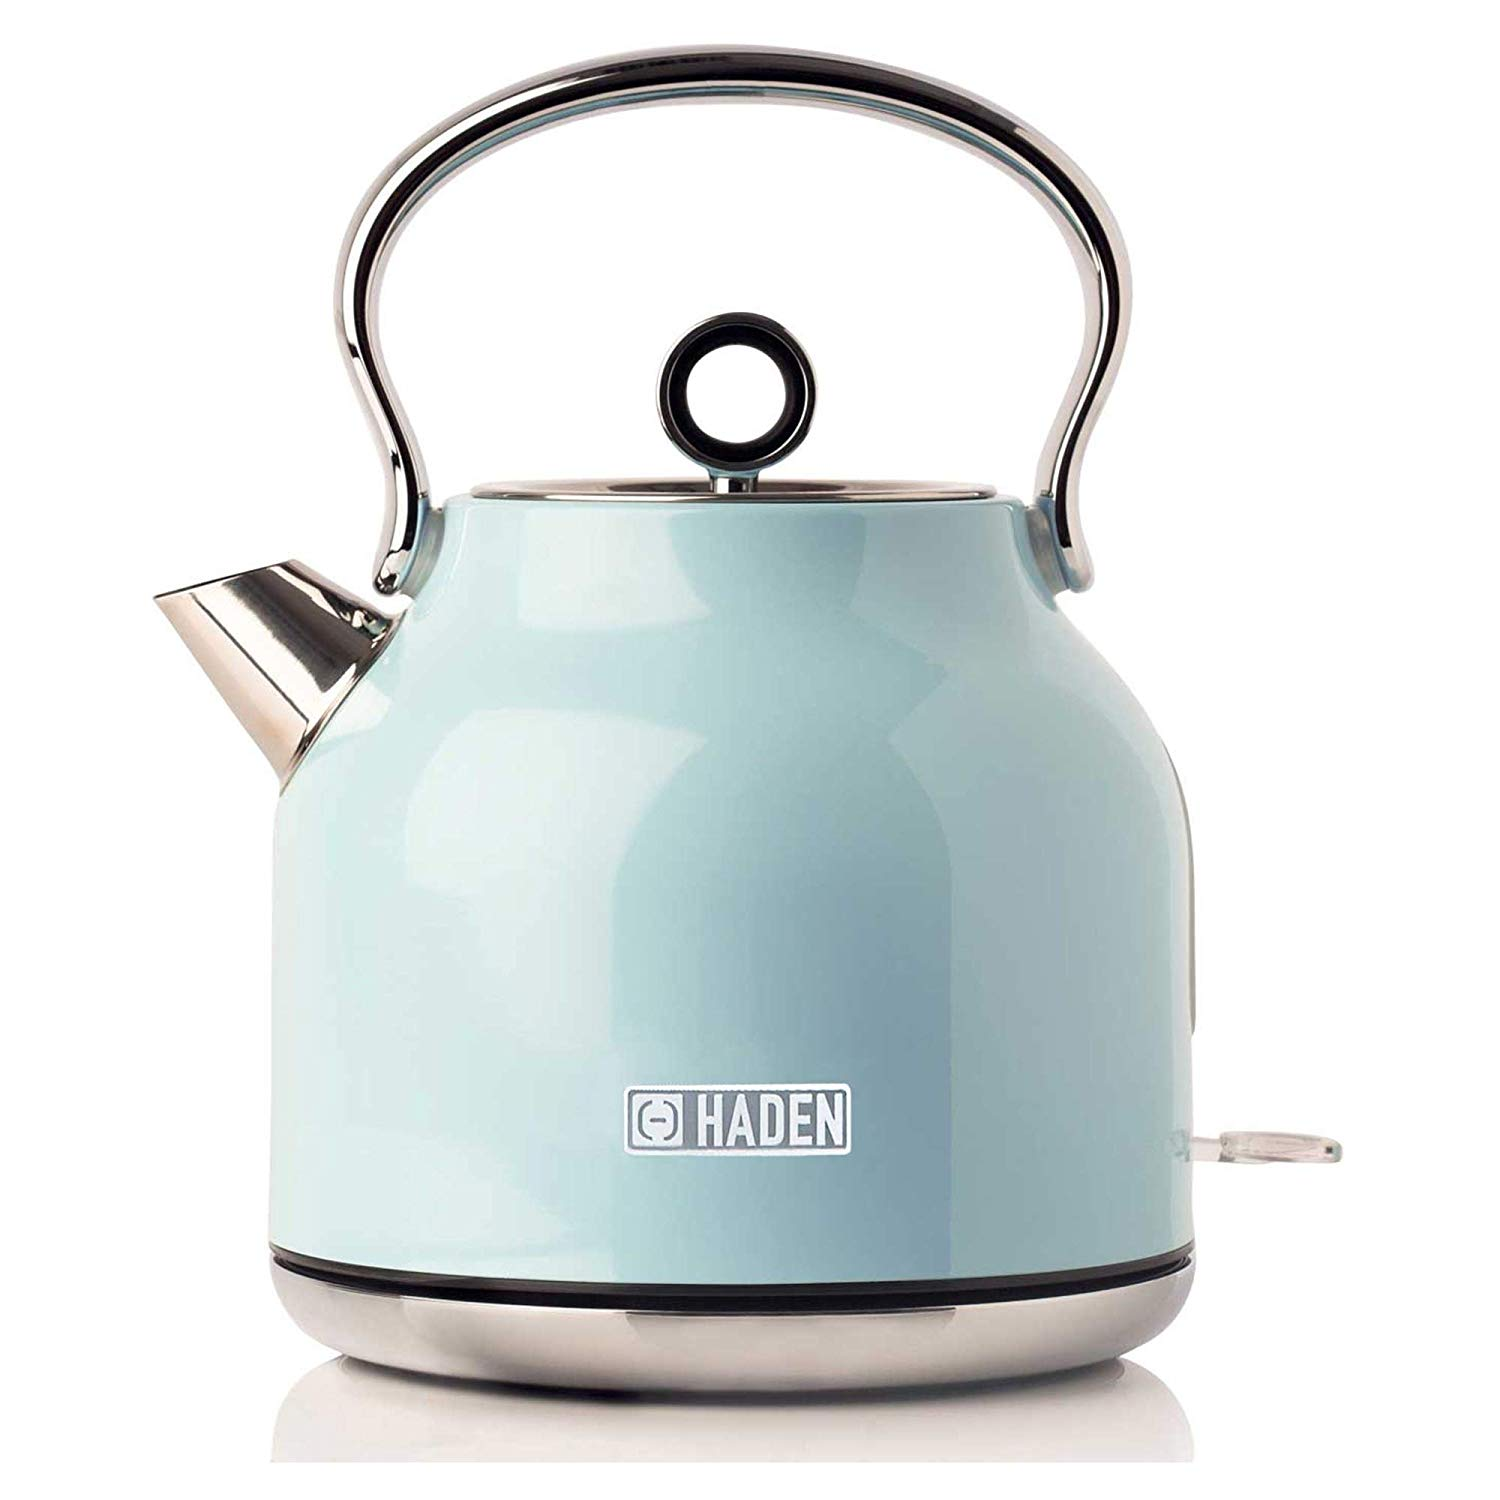 Haden Heritage Kettle Turquoise 1.7L